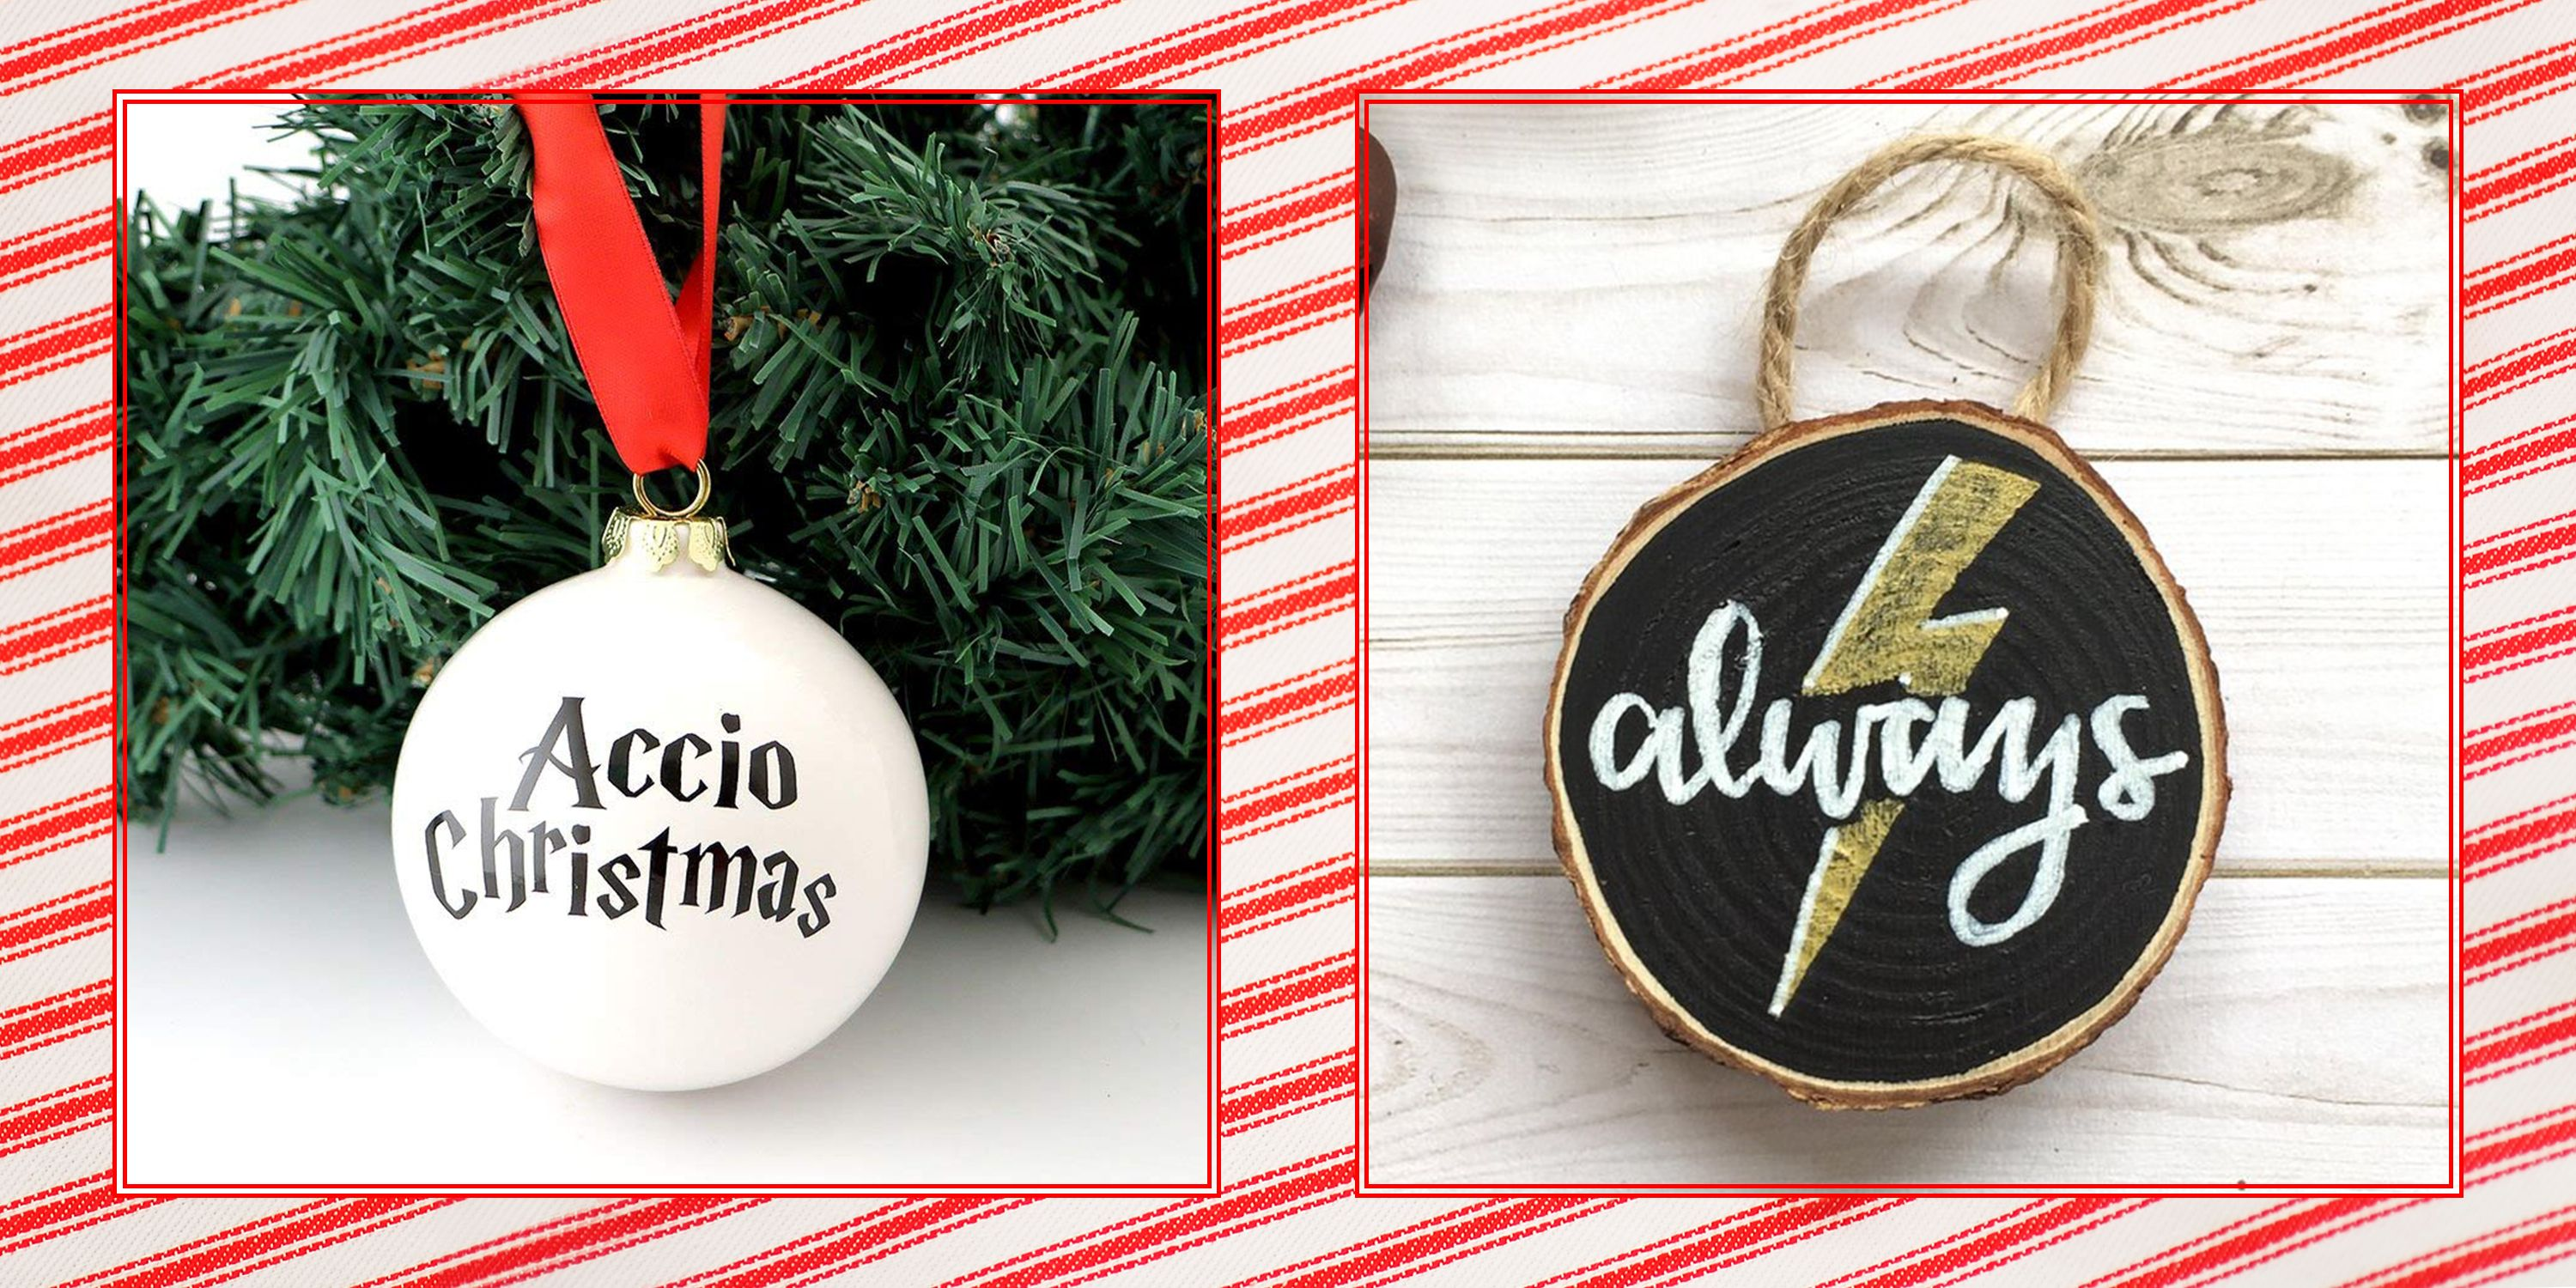 24 Magical Christmas Ornaments All Harry Potter Fans Will Love